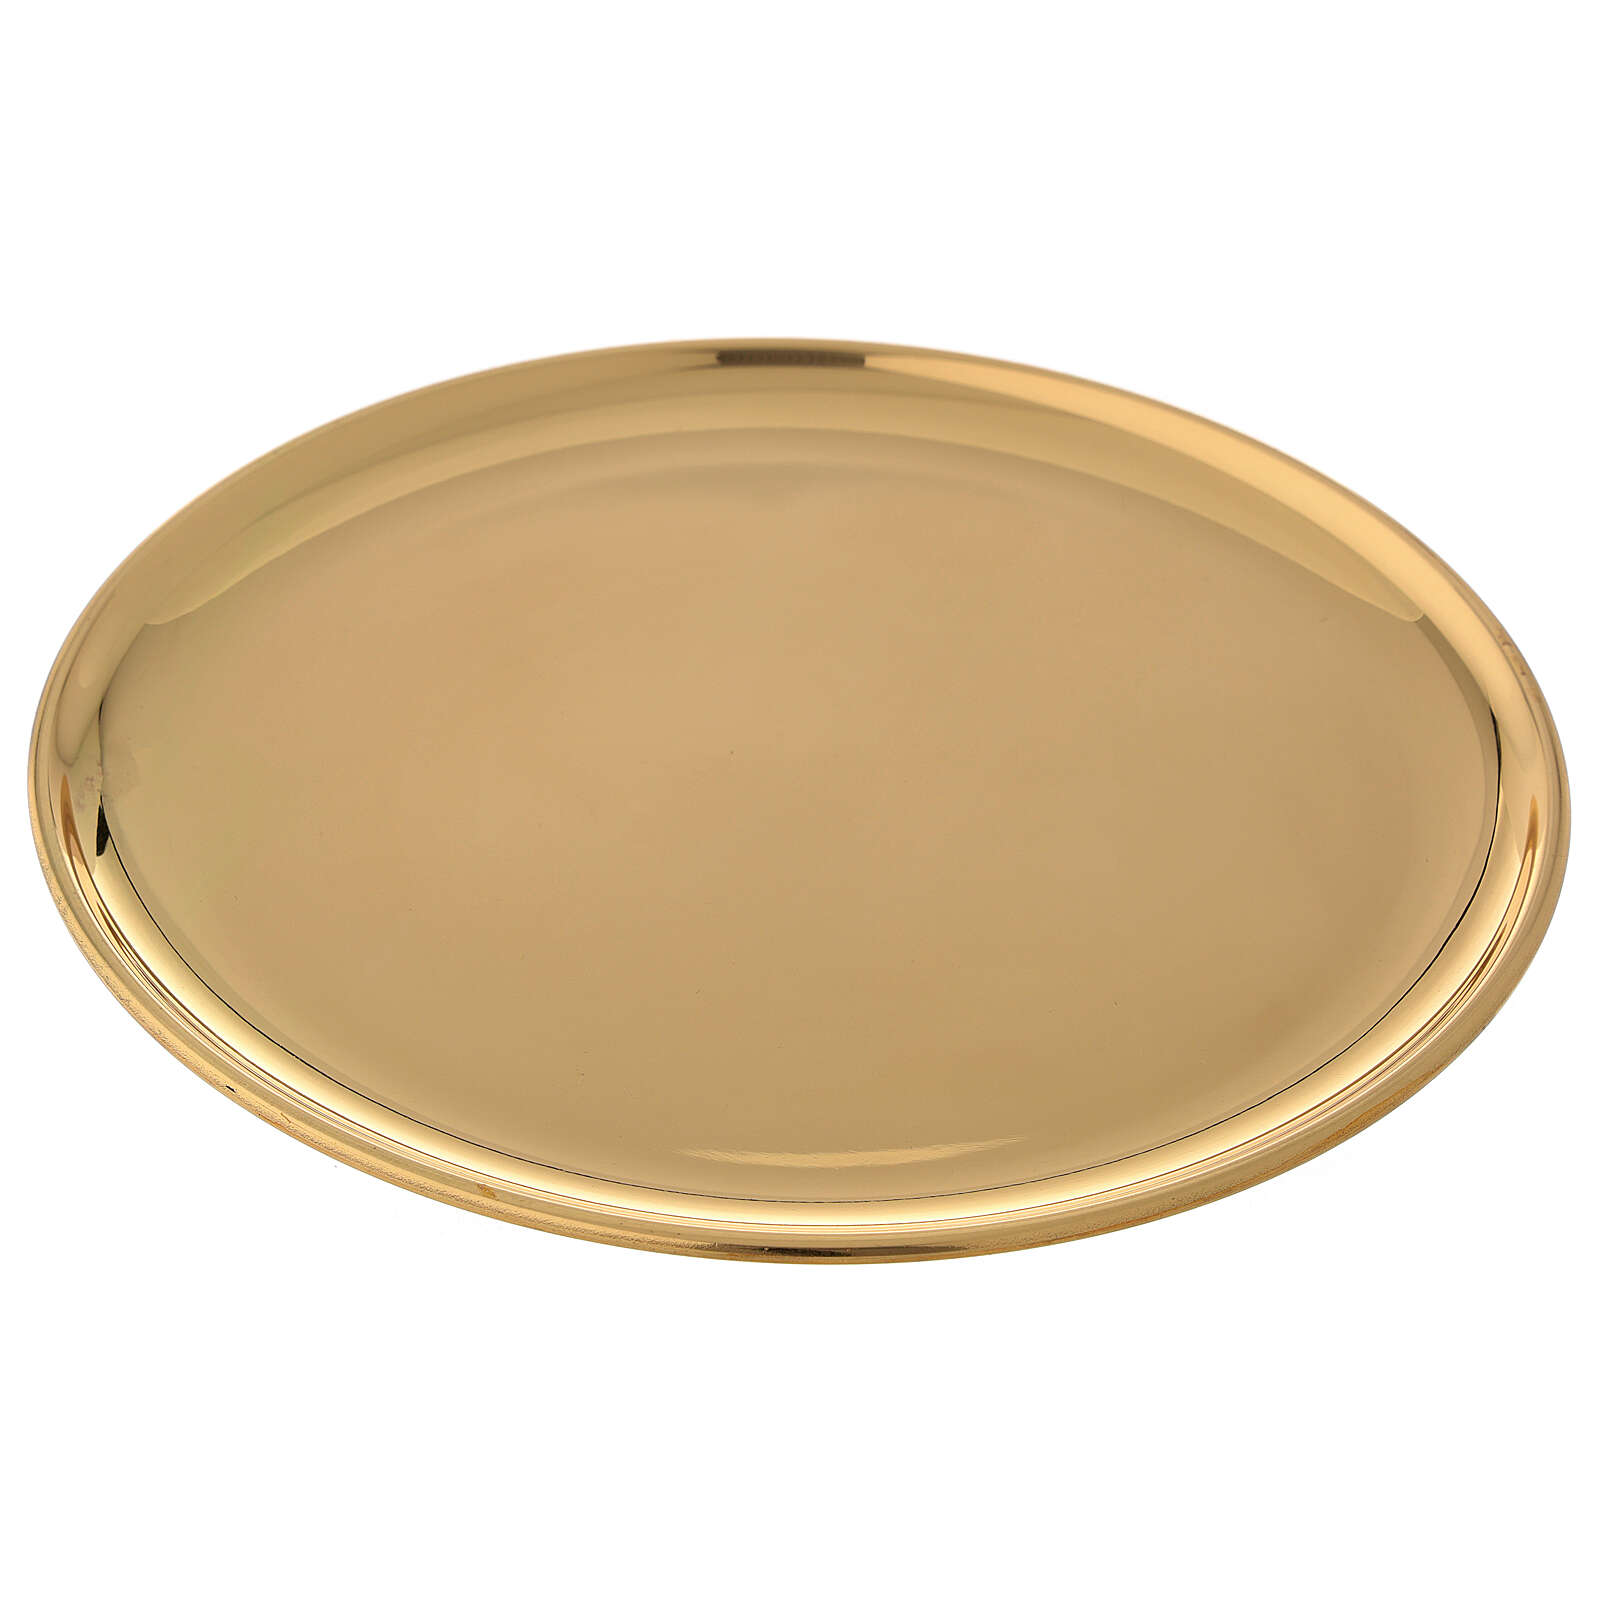 Plate for candle shiny golden brass diameter 17 cm 3